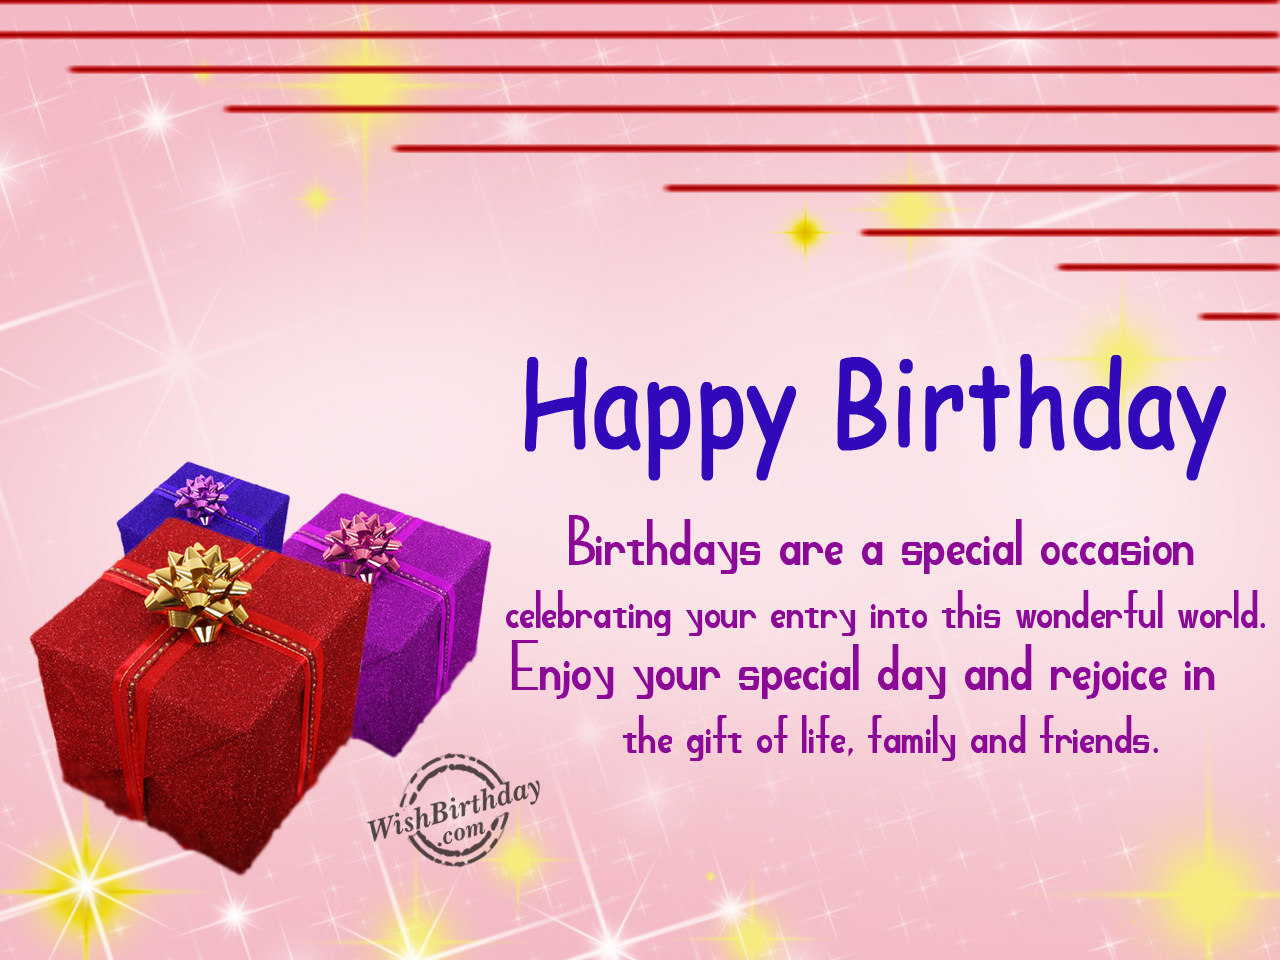 Birthday Wishes With Gifts - Birthday Images, Pictures